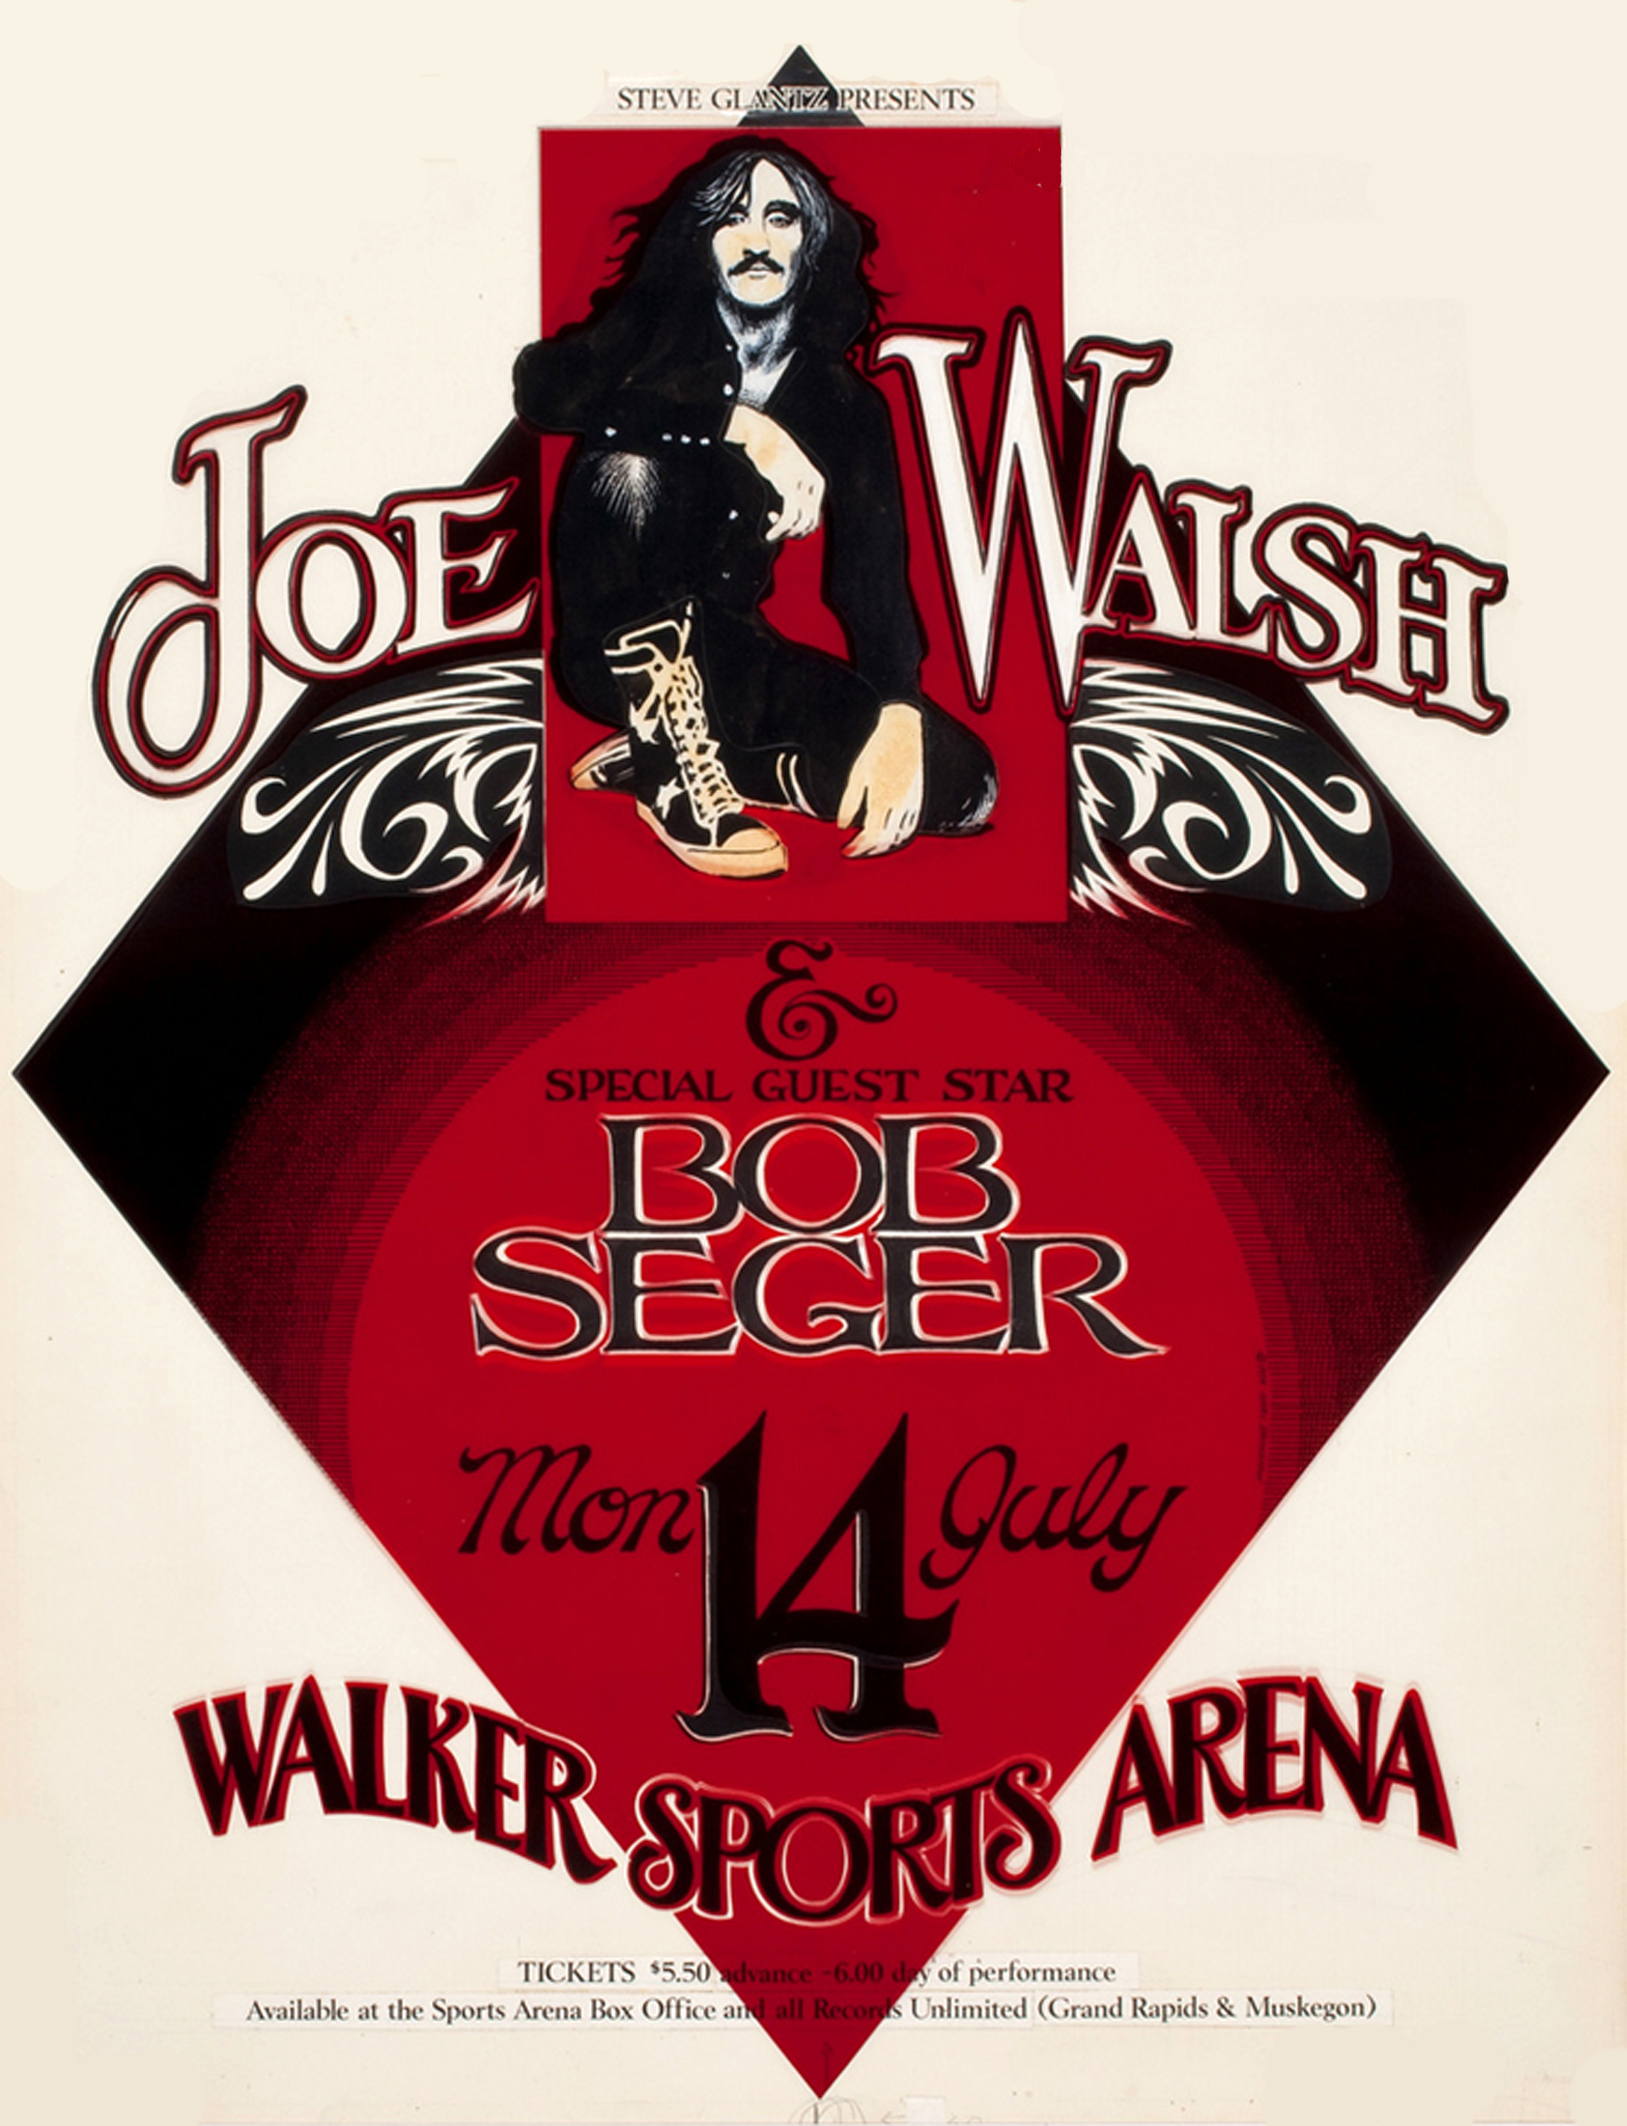 Joe Walsh and Special Guest Bob Seger, Walker Sports Arena